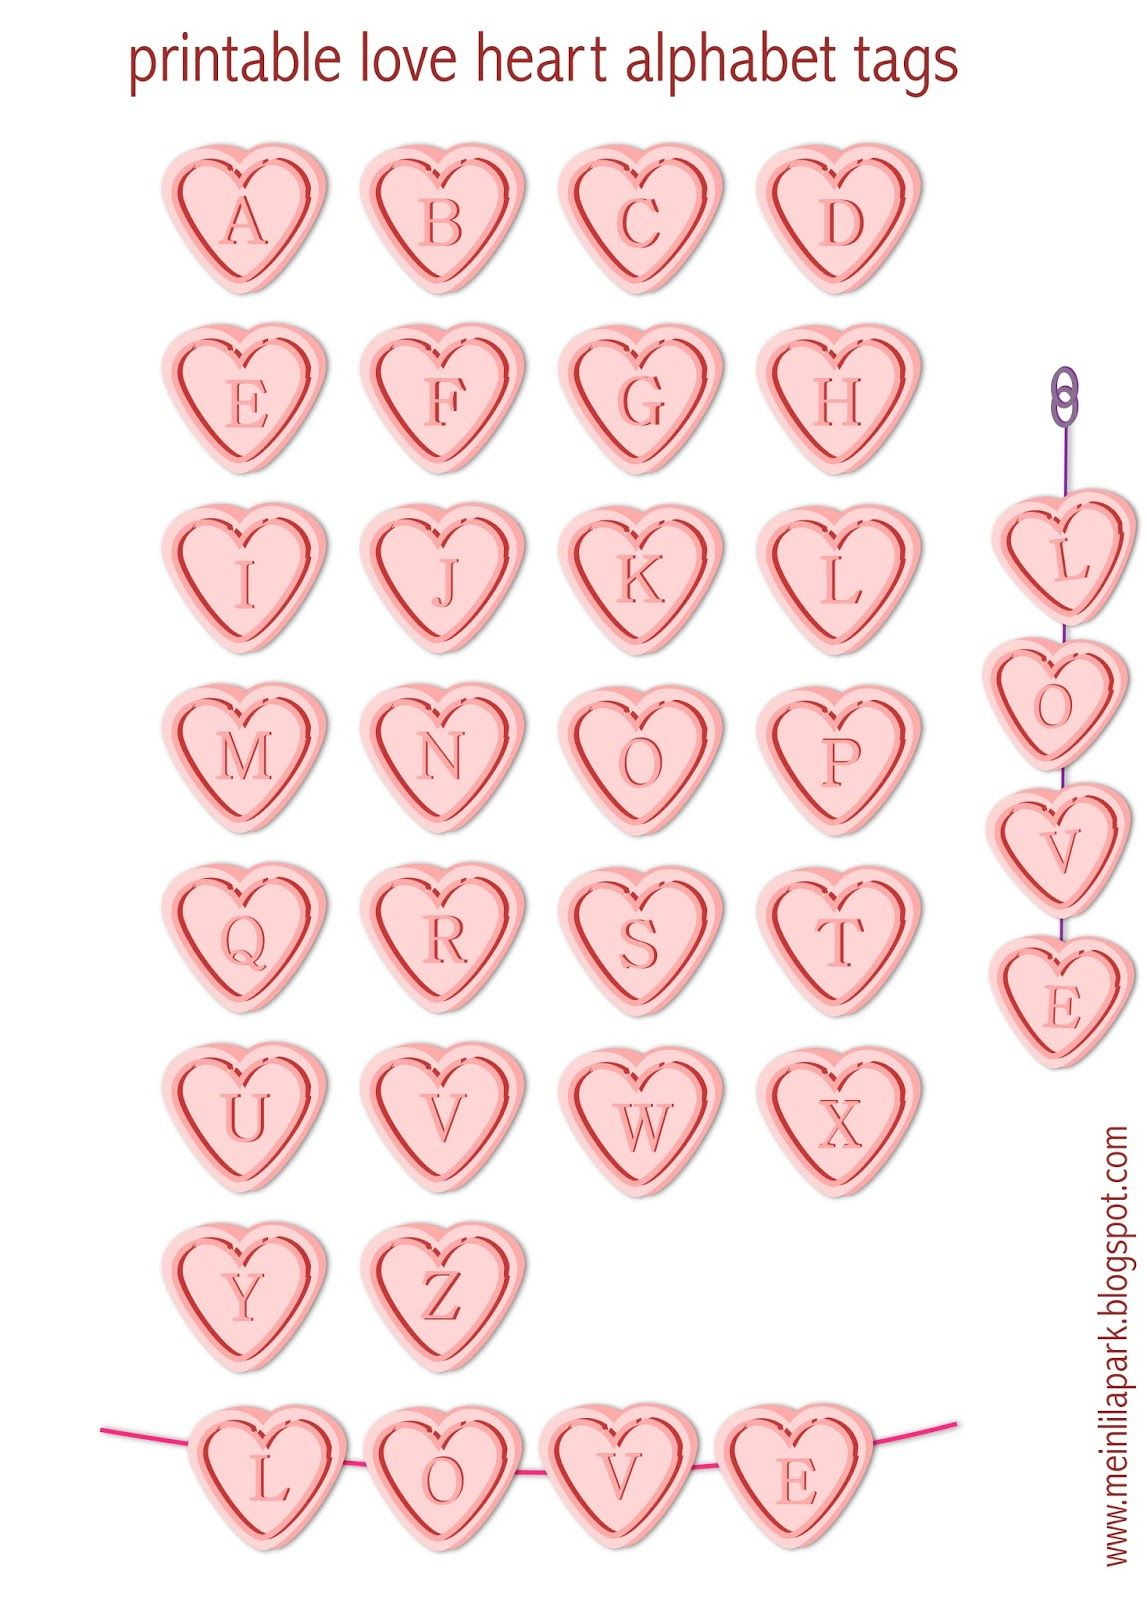 meinlilapark diy printables and downloads free printable alphabet letter tags love hearts ausdruckbare buchstaben freebie